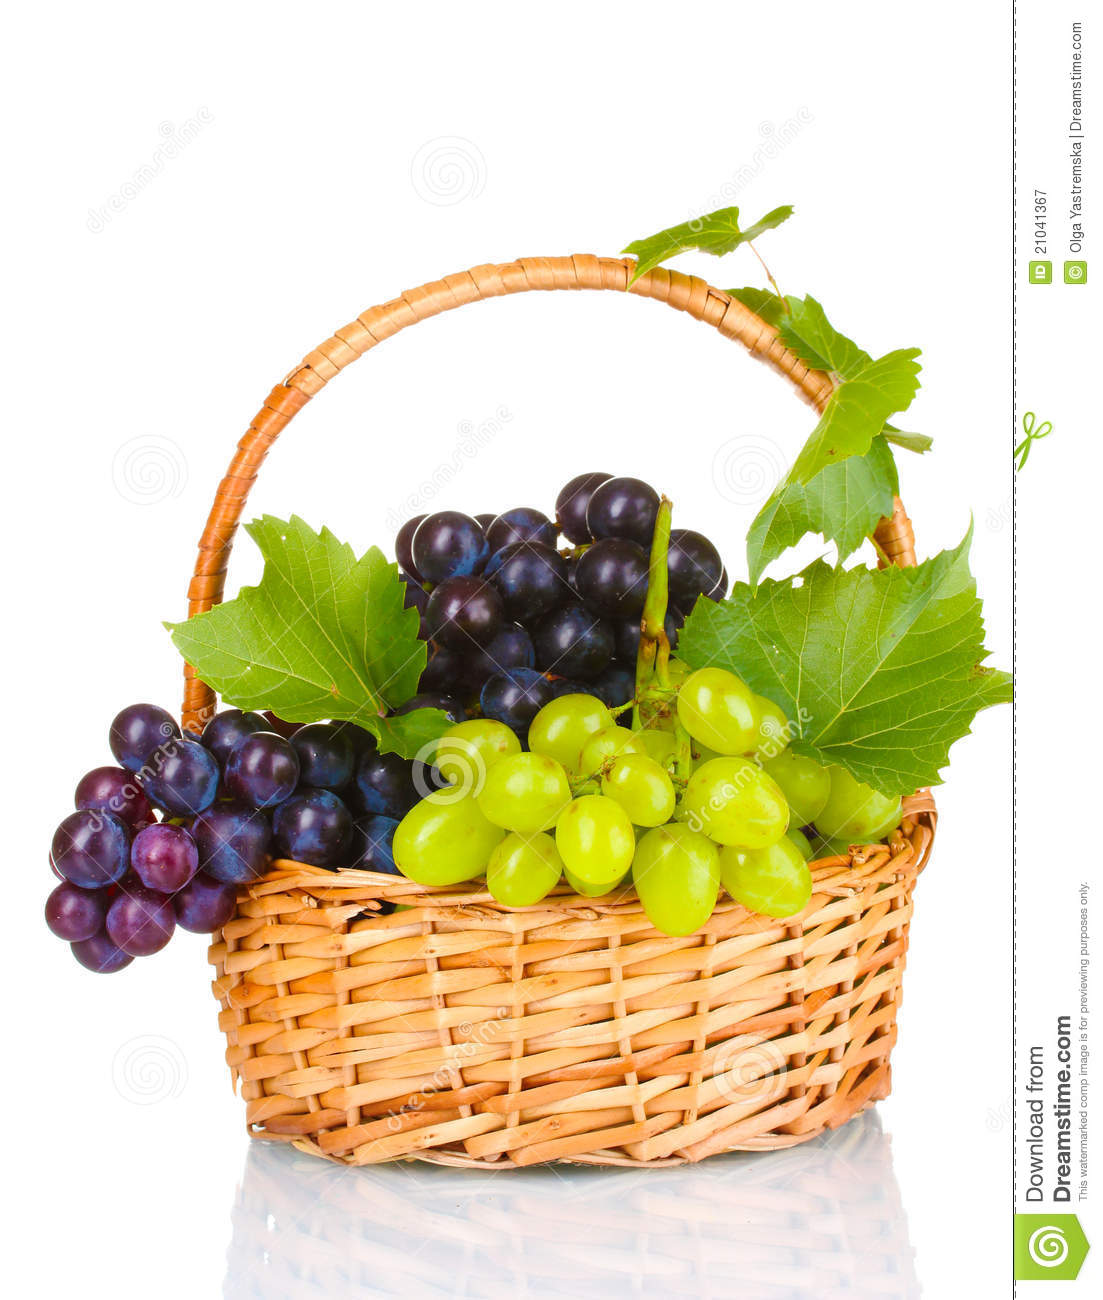 Basket Weaving Grapevines : Ripe red grapes in basket stock image of grail